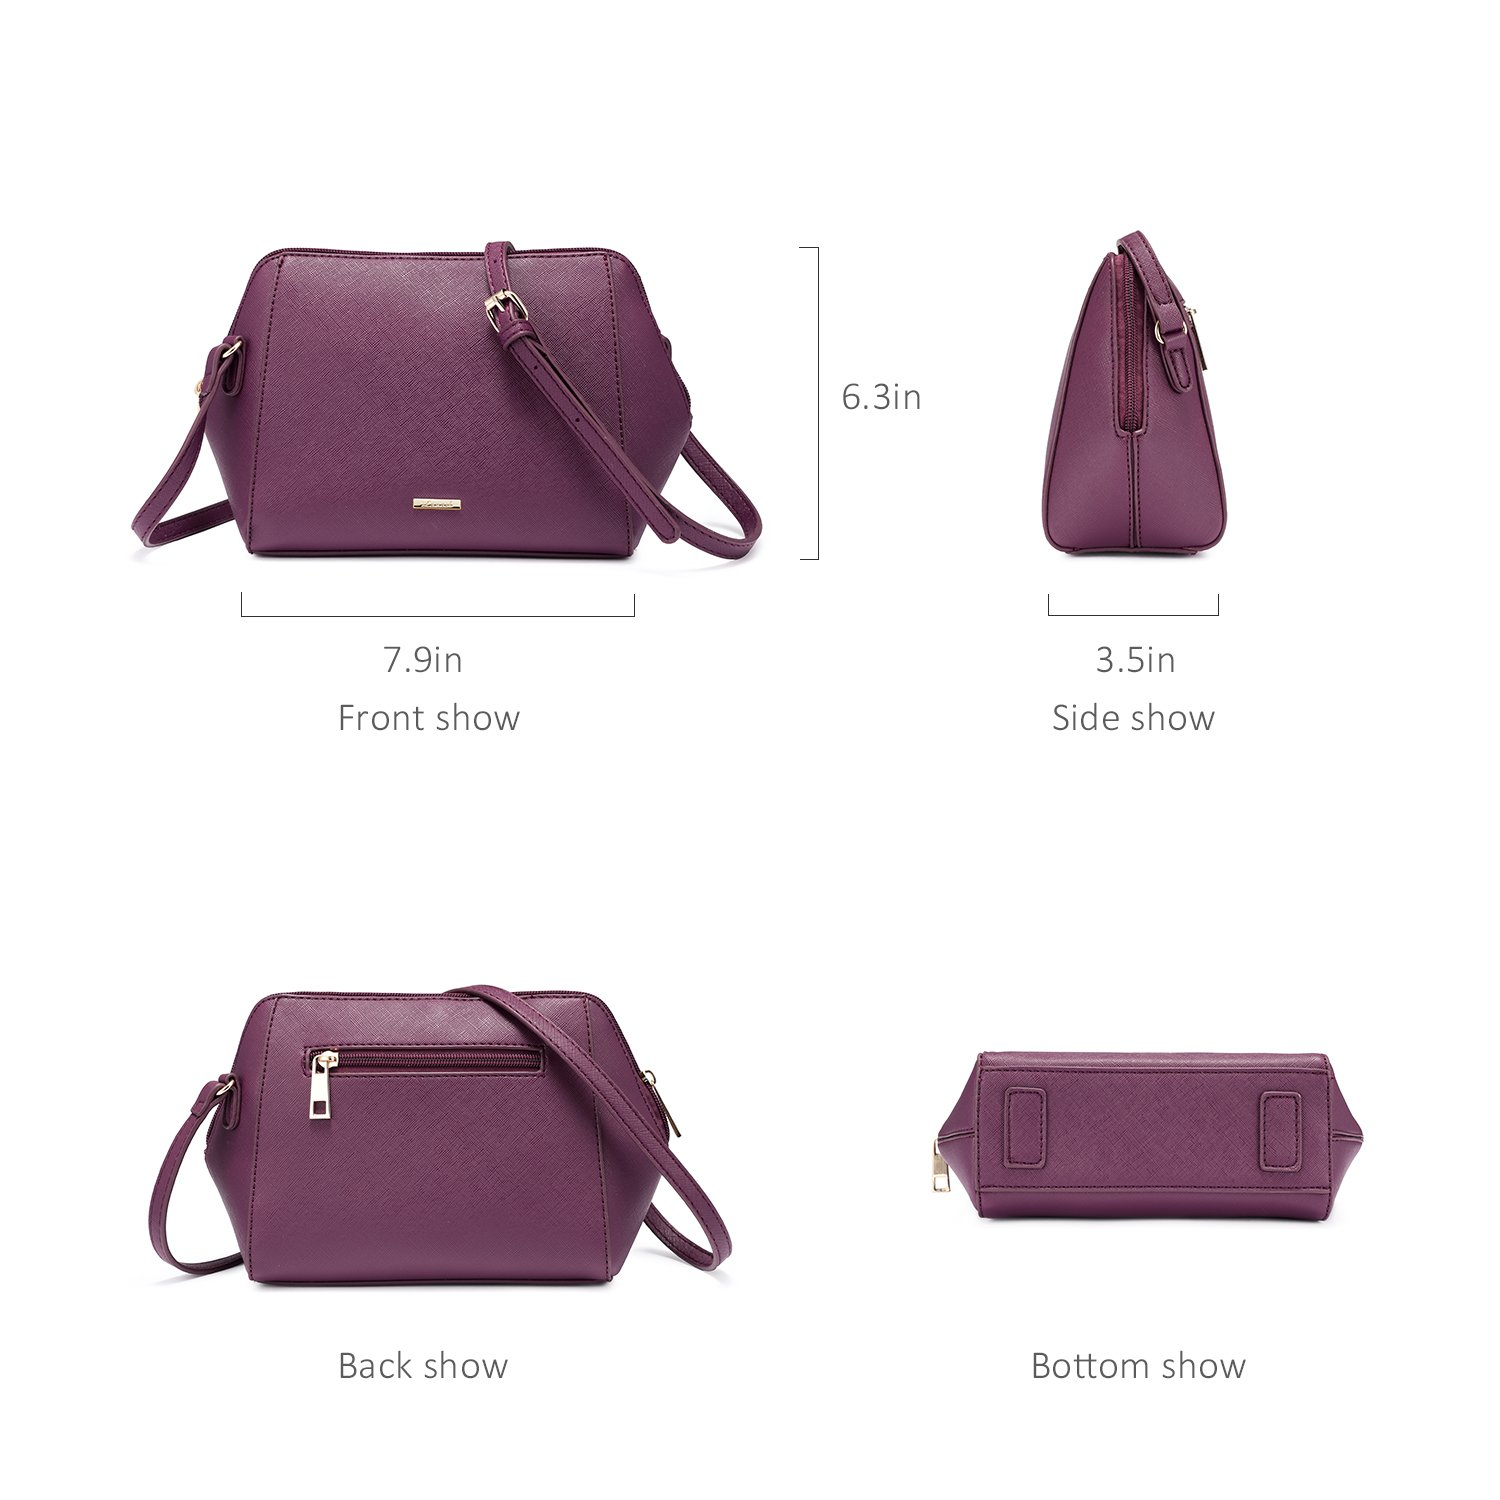 LOVEVOOK Women Purses and Handbags Chic Crossbody Bag Hobo 3pcs Large Capacity Purple by LOVEVOOK (Image #5)